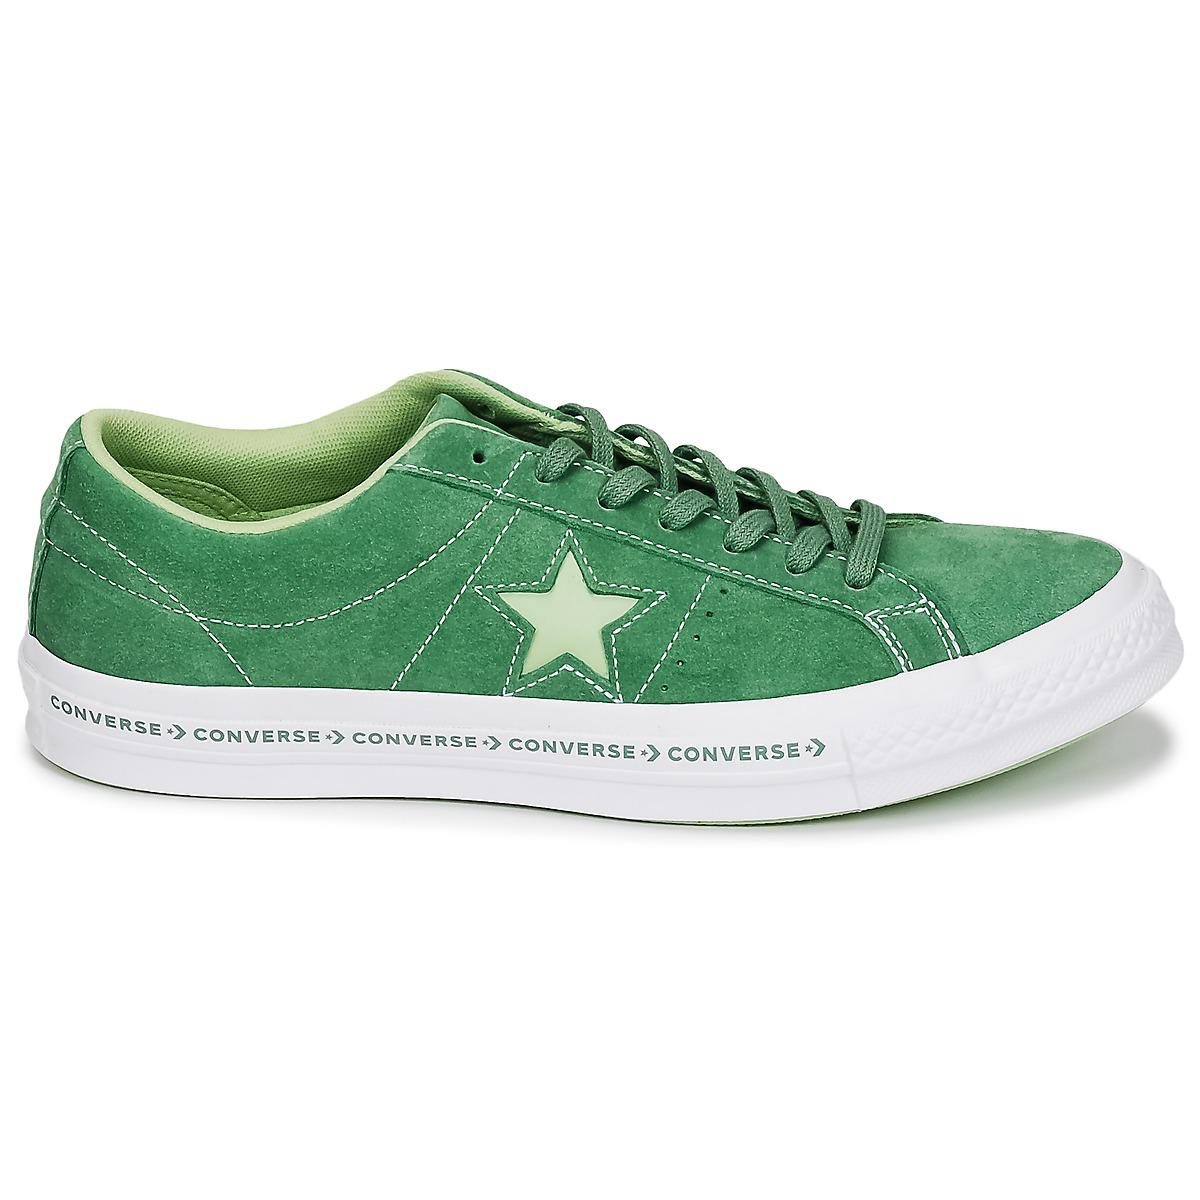 06ce90a6e28f Converse One Star Shoes (trainers) in Green for Men - Save 12% - Lyst